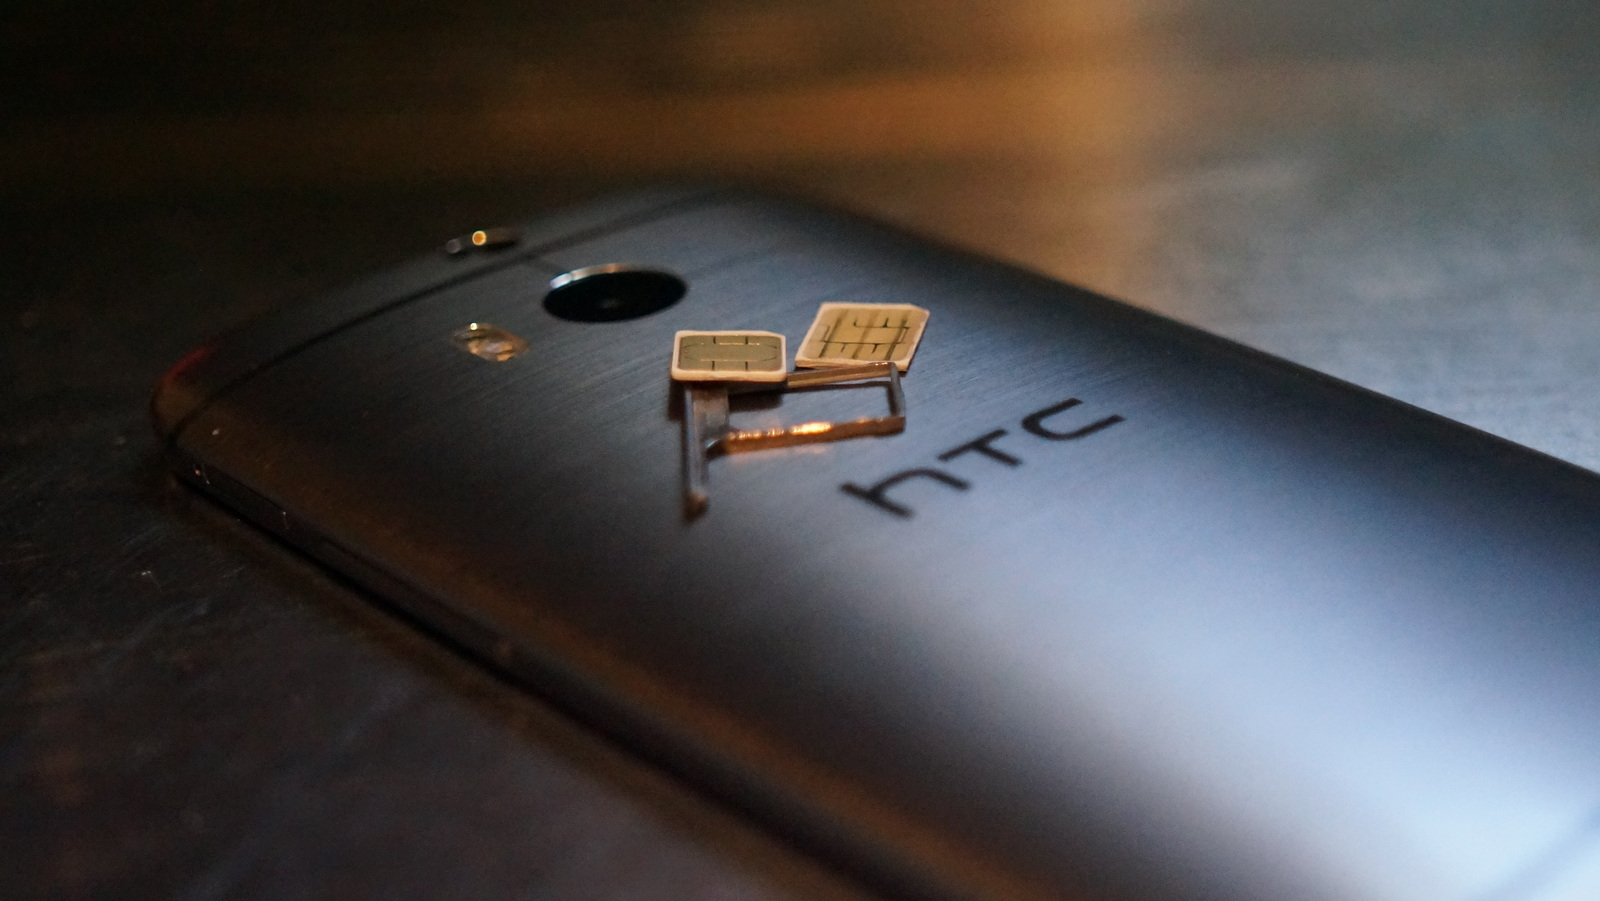 How to SIM unlock the HTC One (M8) for free – HTC Source